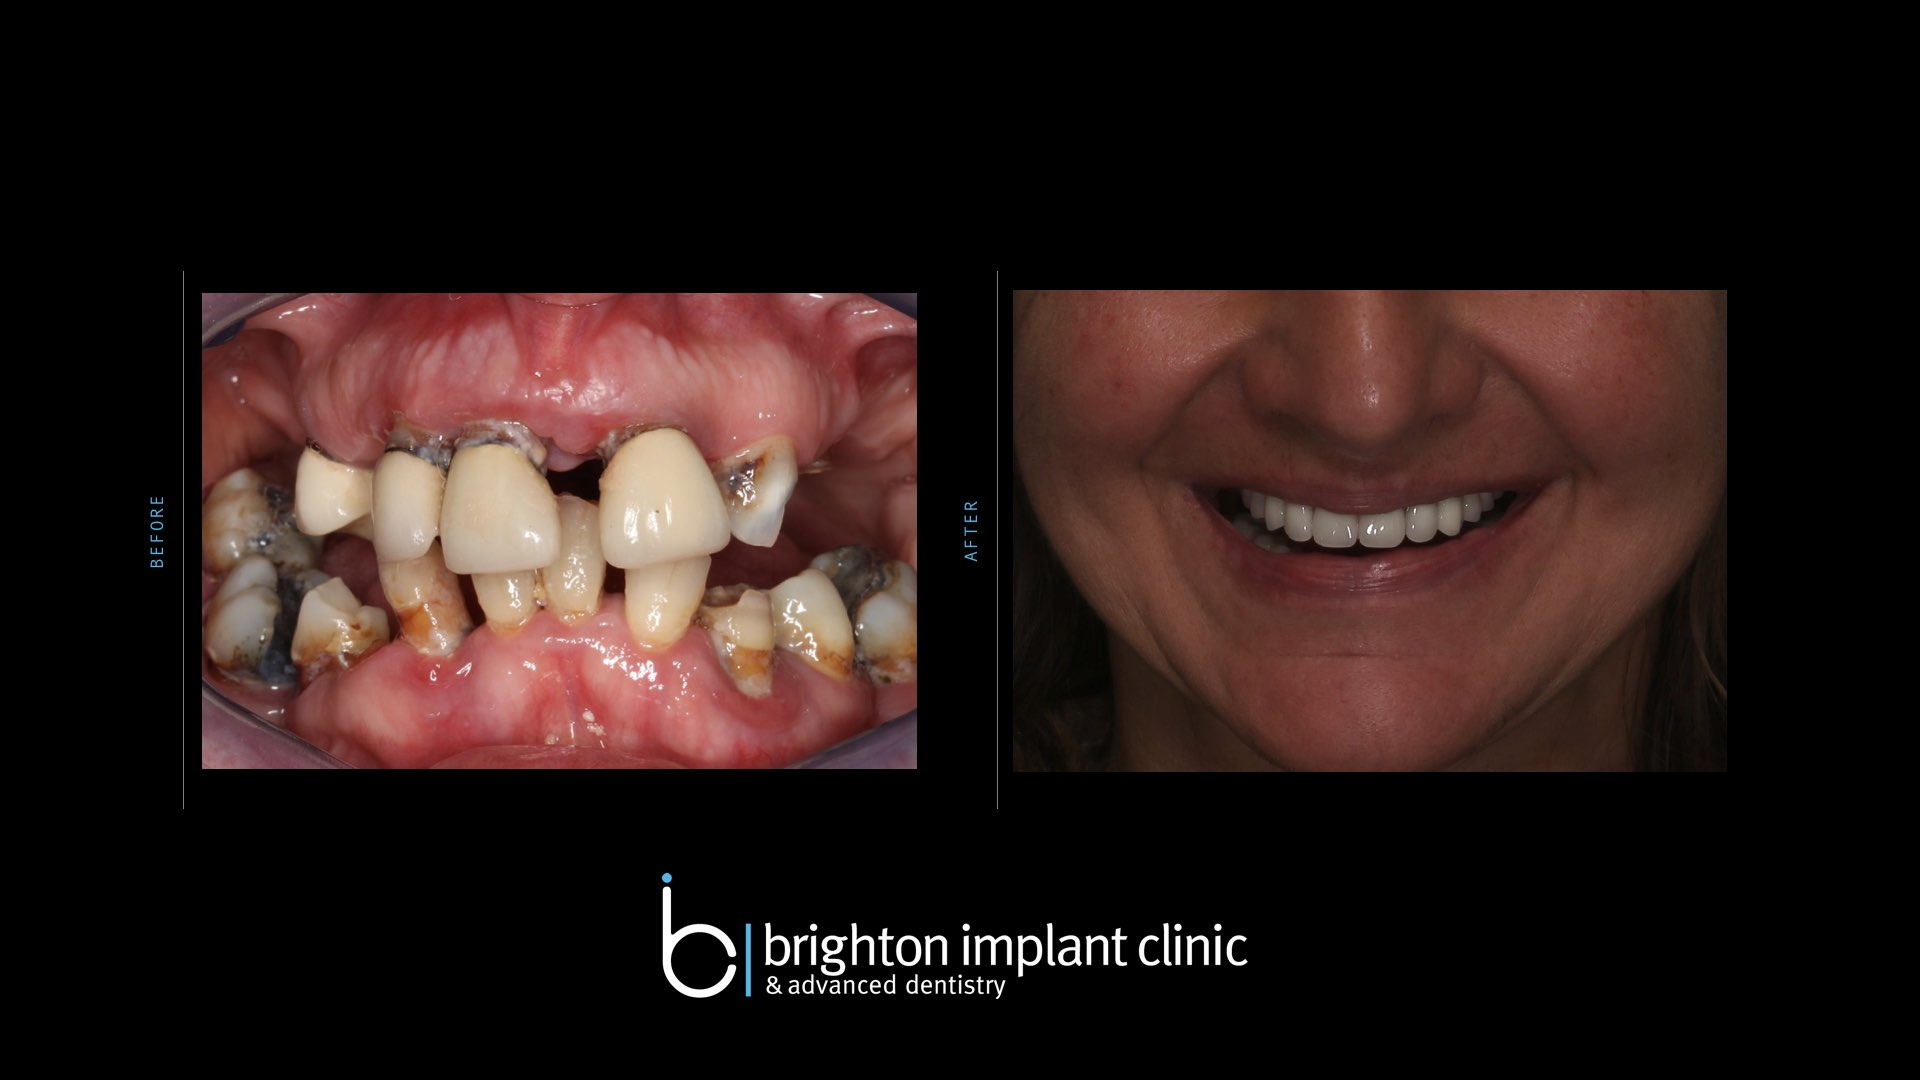 titanium implants before and after treatment